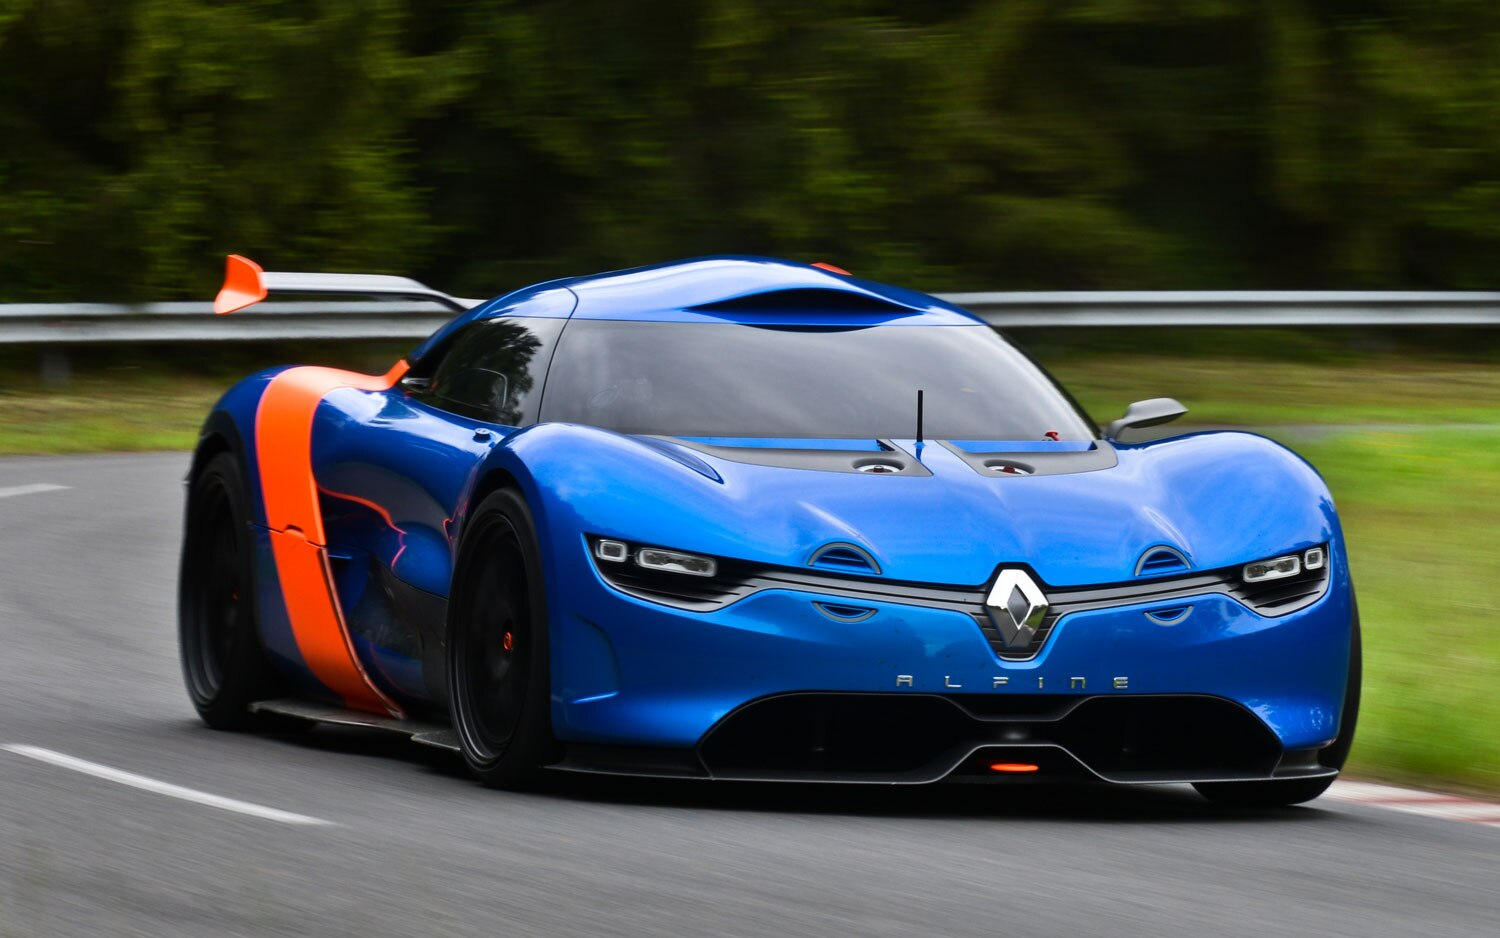 Alpine Renault A110 50 Concept Front Three Quarter View1